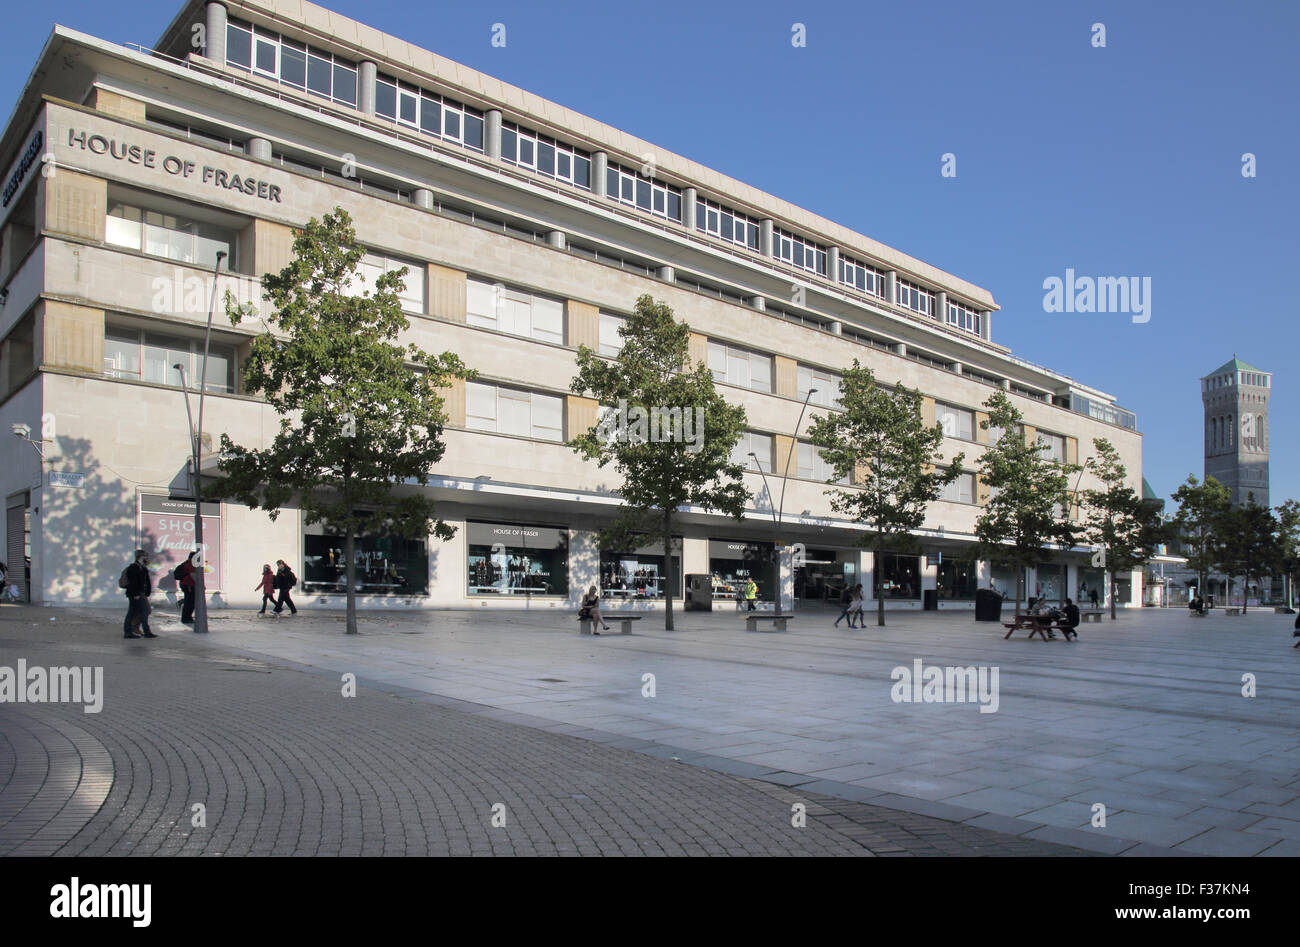 house of fraser in plymouth city centre - Stock Image